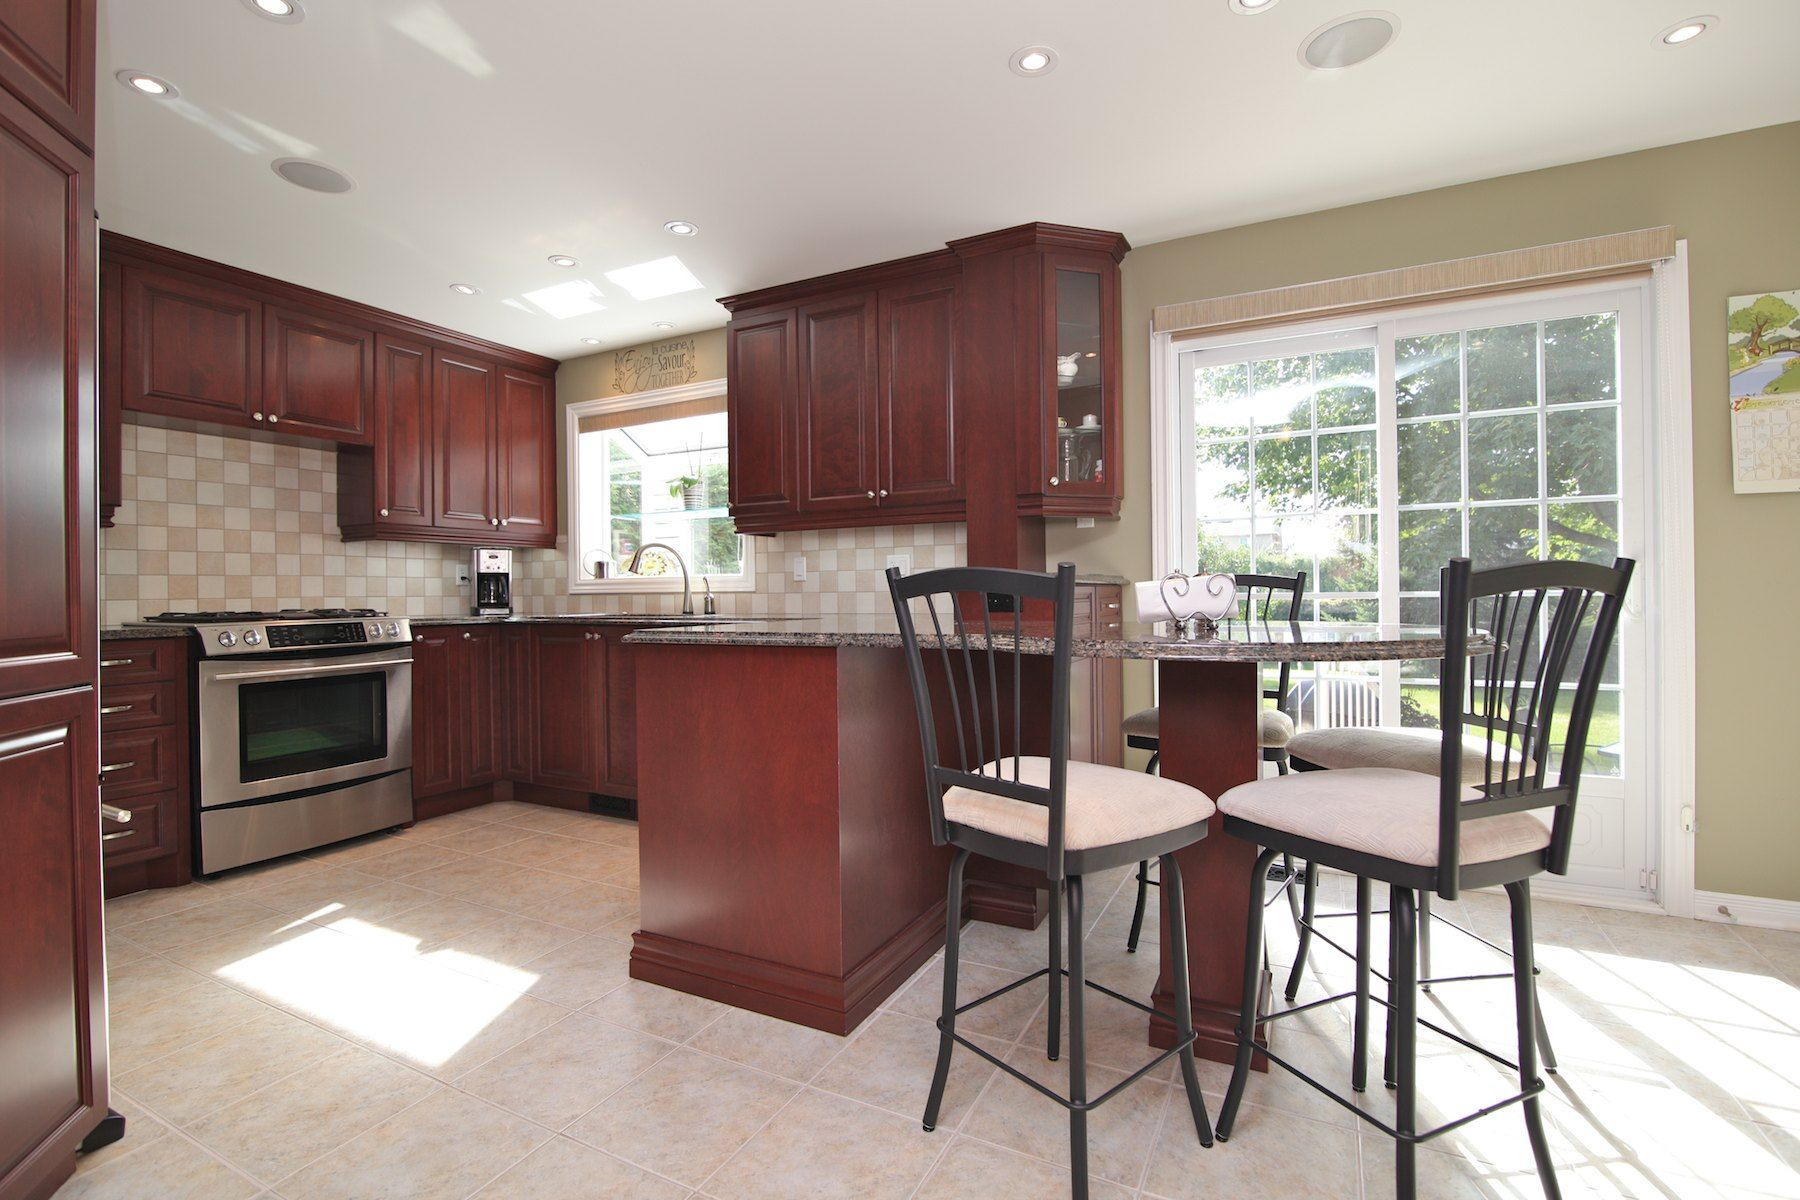 Stunning Kitchen With New Cabinets, Granite Counter Tops & Eating